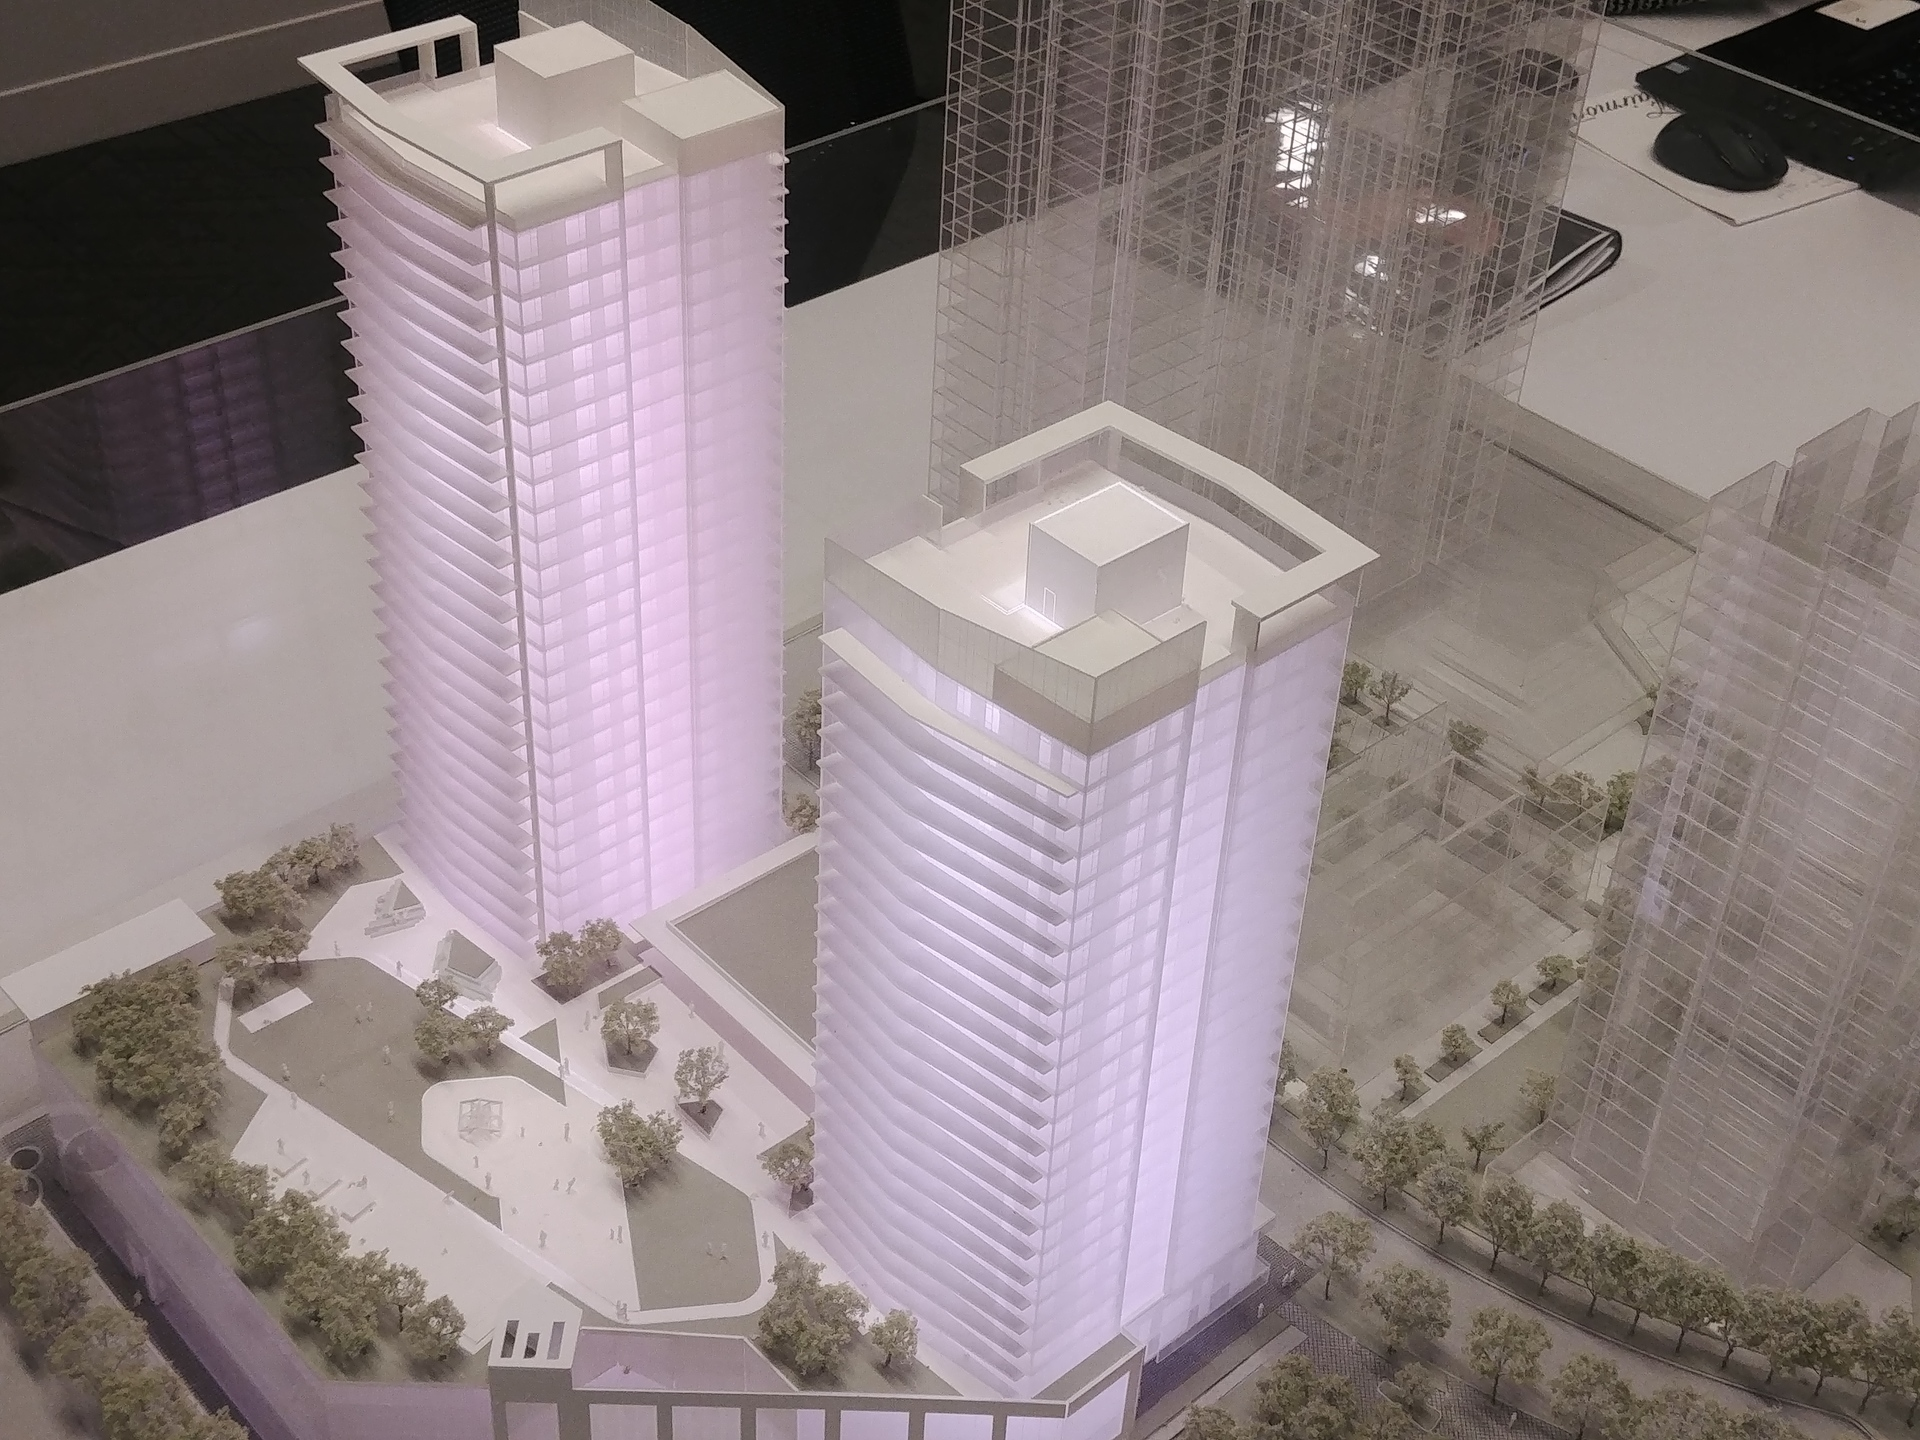 soco-1st-phase-south-tower-at-bottom-of-photo at SOCO (319 North Road, Coquitlam West, Coquitlam)